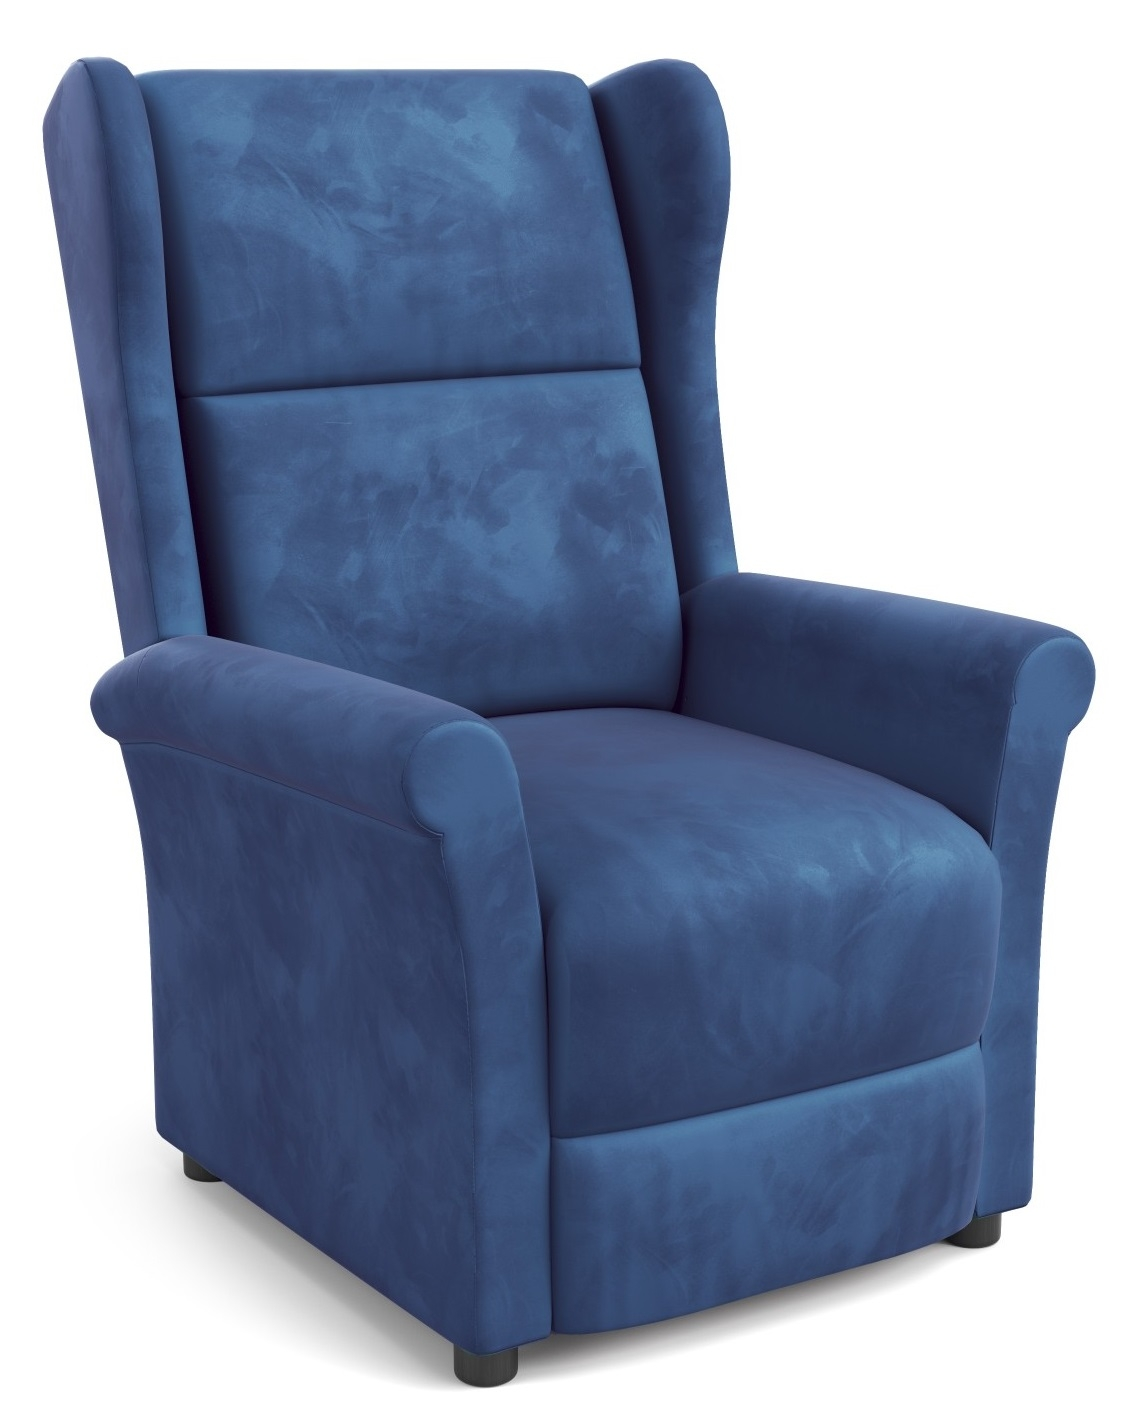 Fauteuil Agustin in blauw